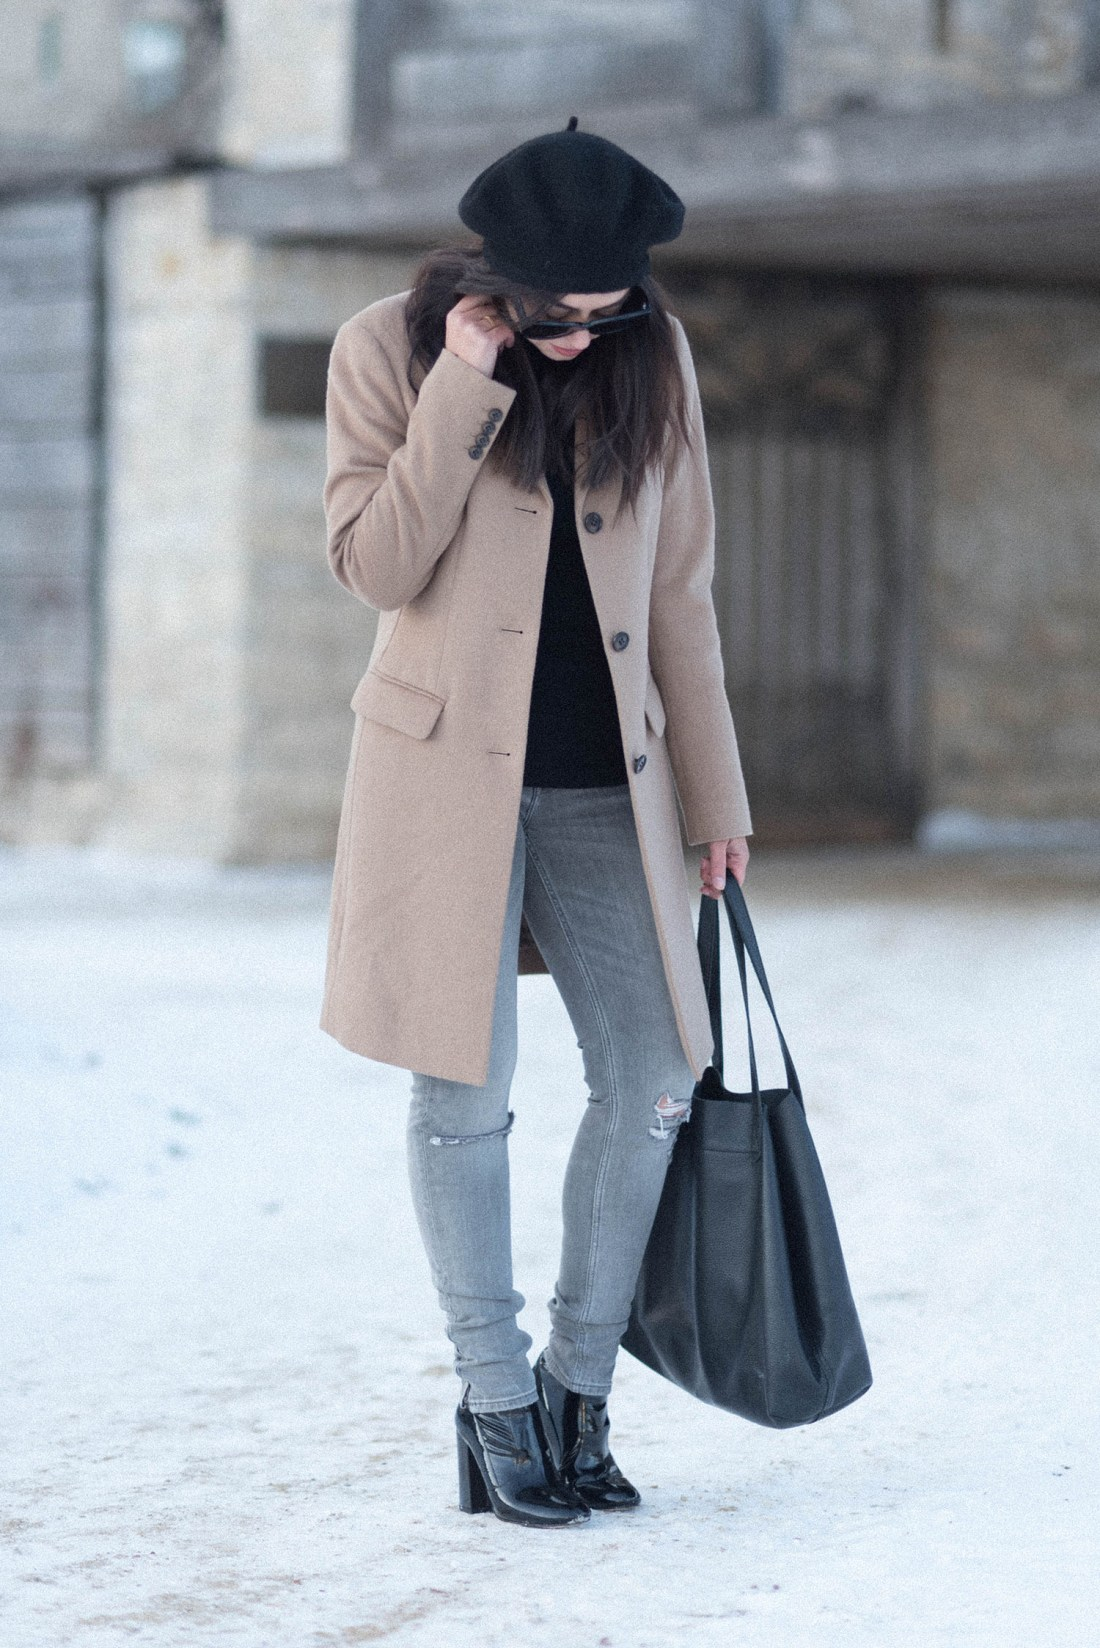 Canadian fashion blogger Cee Fardoe of Coco & Vera wearings a Uniqlo camel coat and Zara grey jeans at Fort Garry in Winnipeg